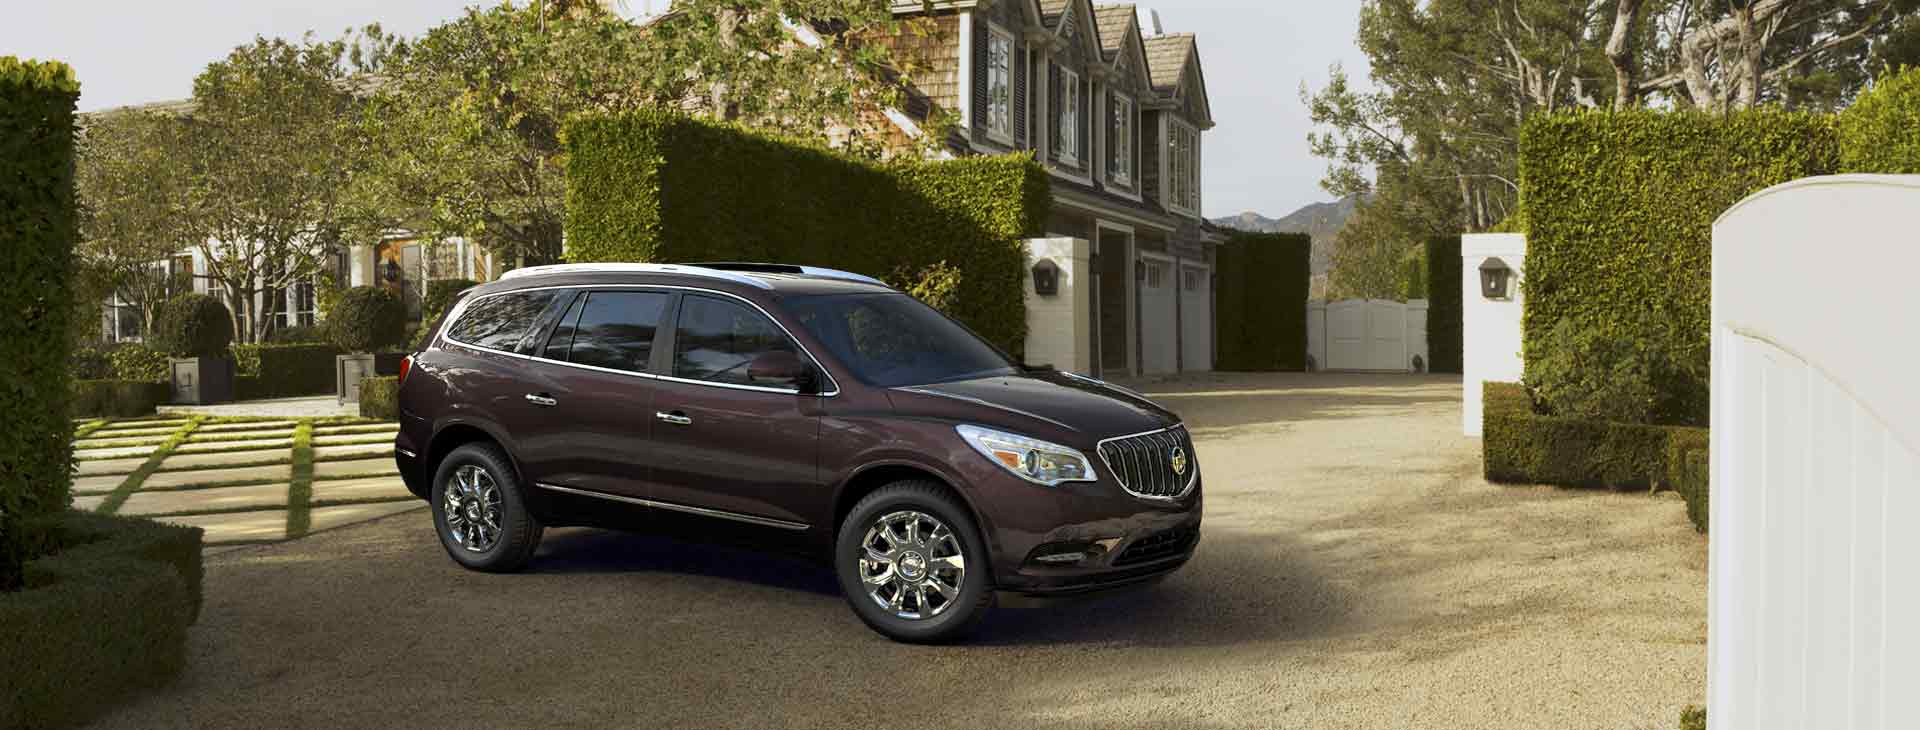 2016 Buick Enclave Info, Pictures, Specs, Wiki | Gm Authority Can A 2022 Buick Enclave Be Flat Towed